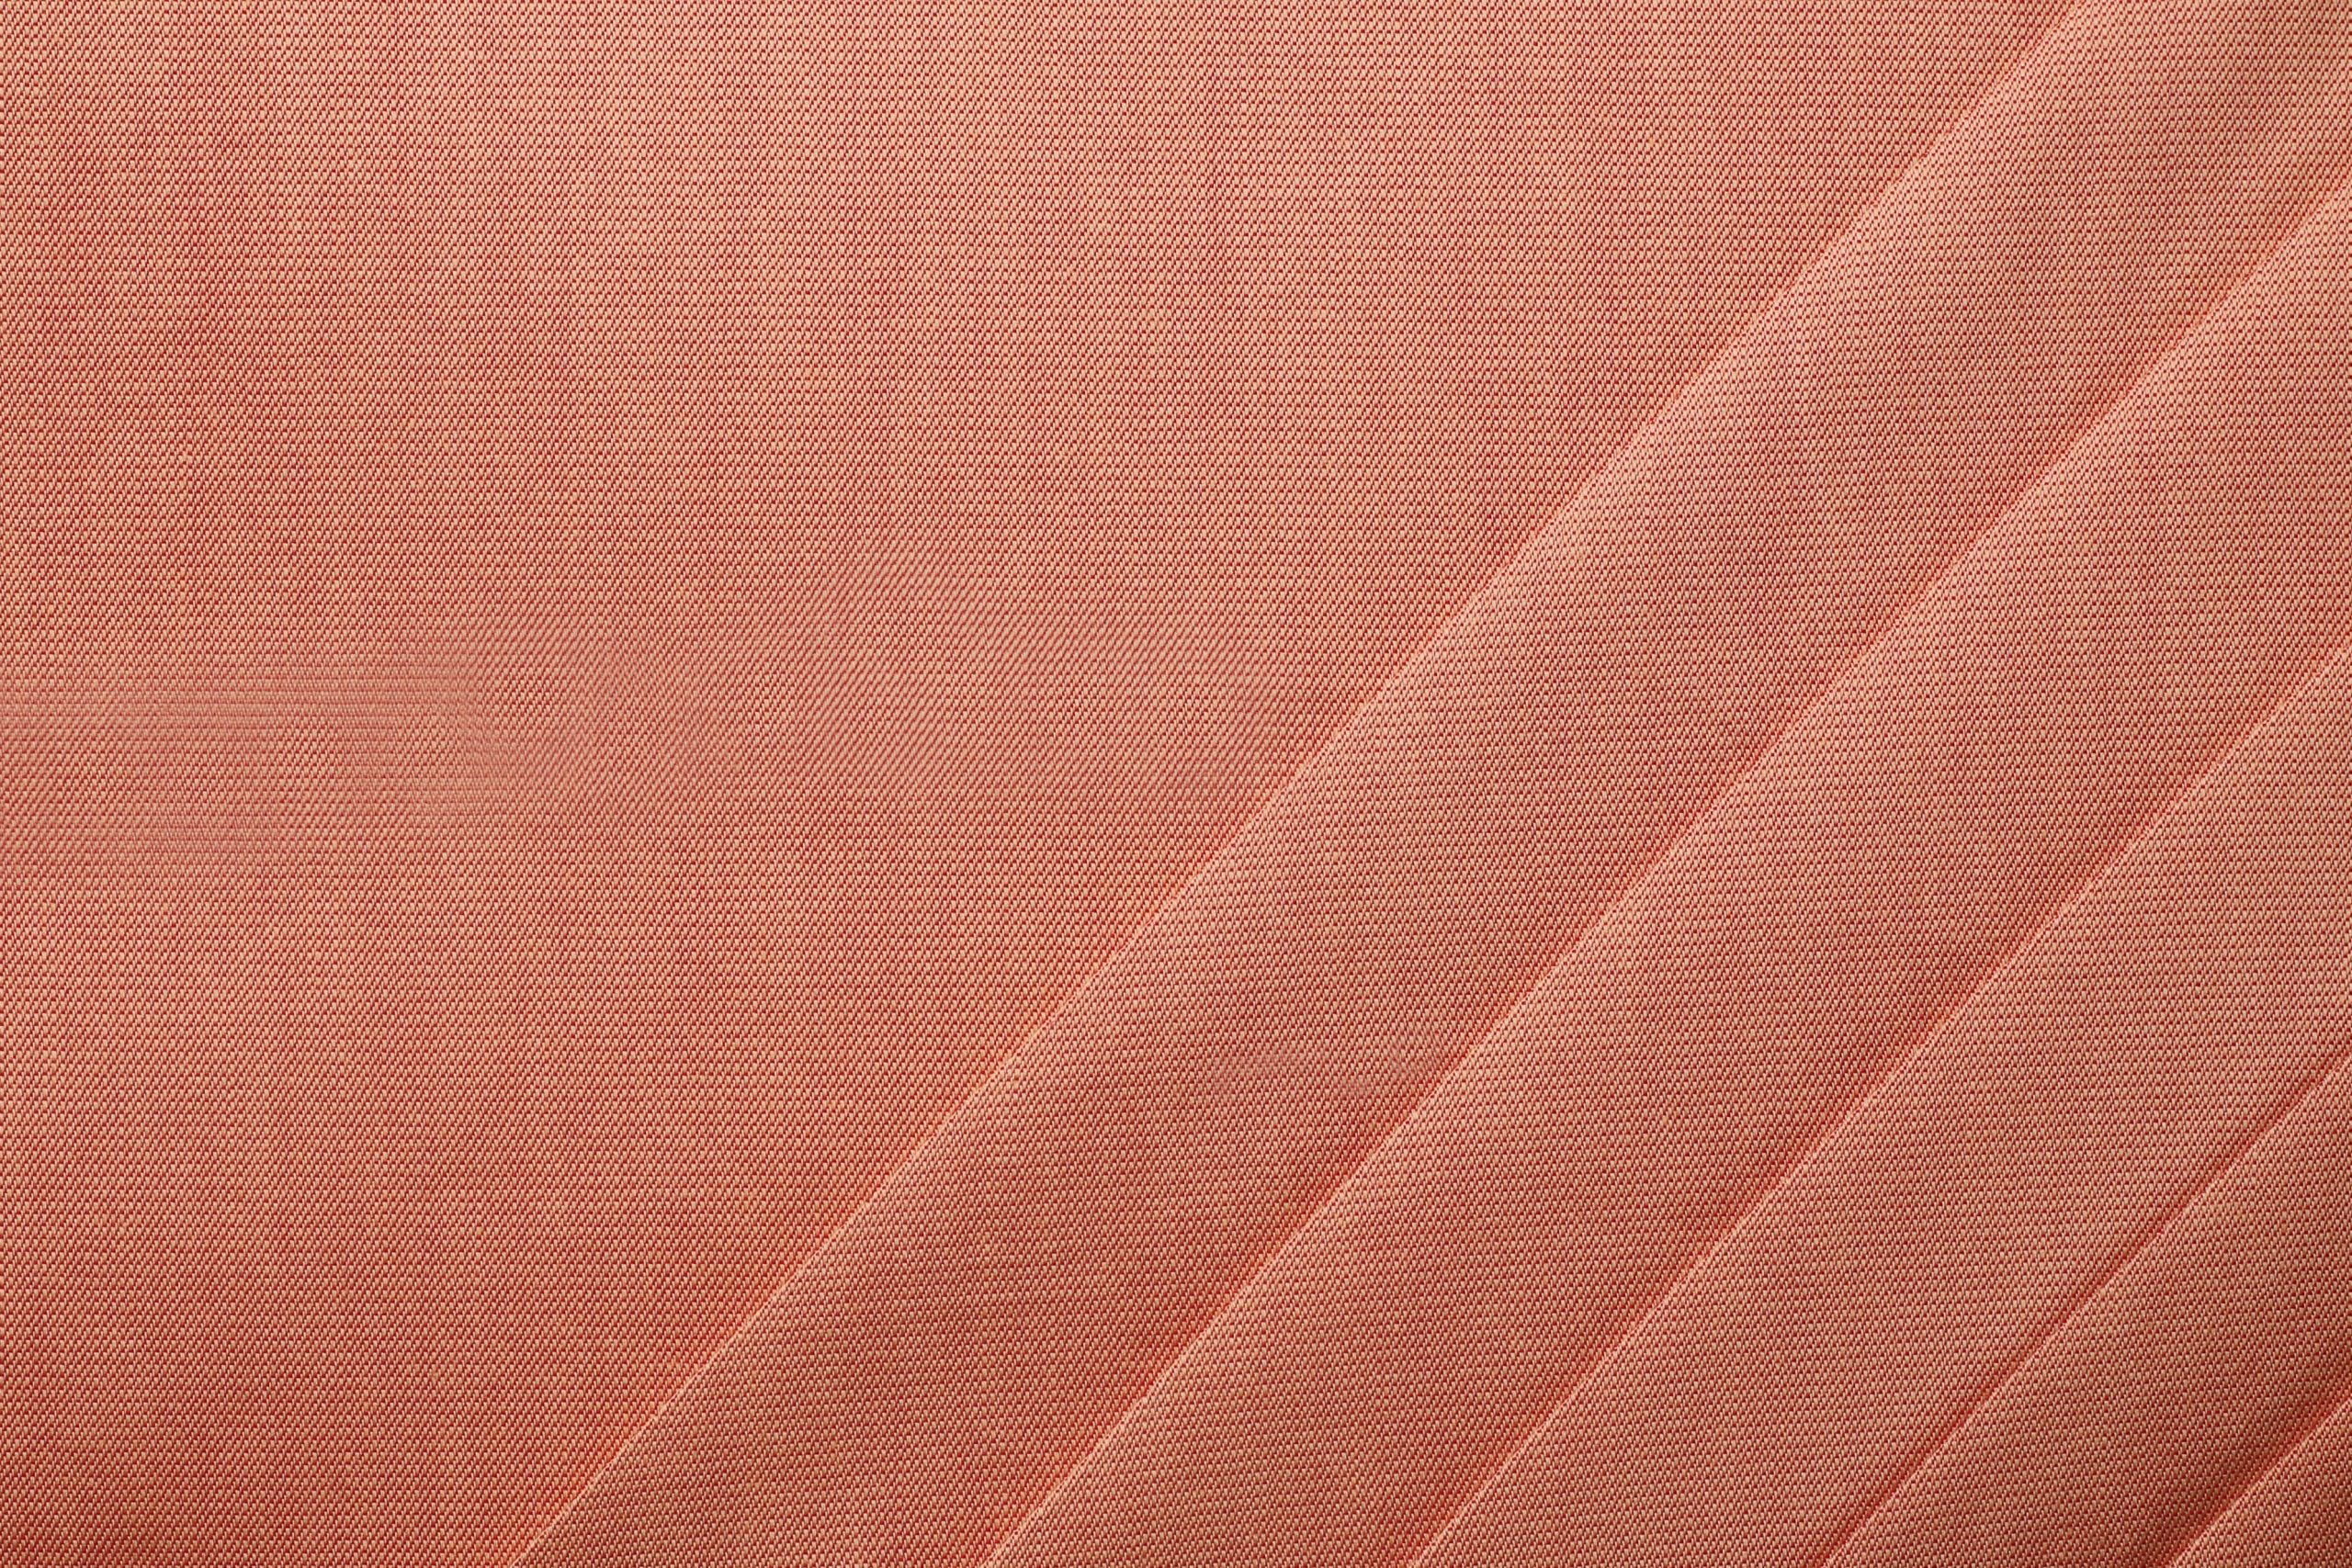 Cotton Poly Cross Dyed fabric shirt fabric